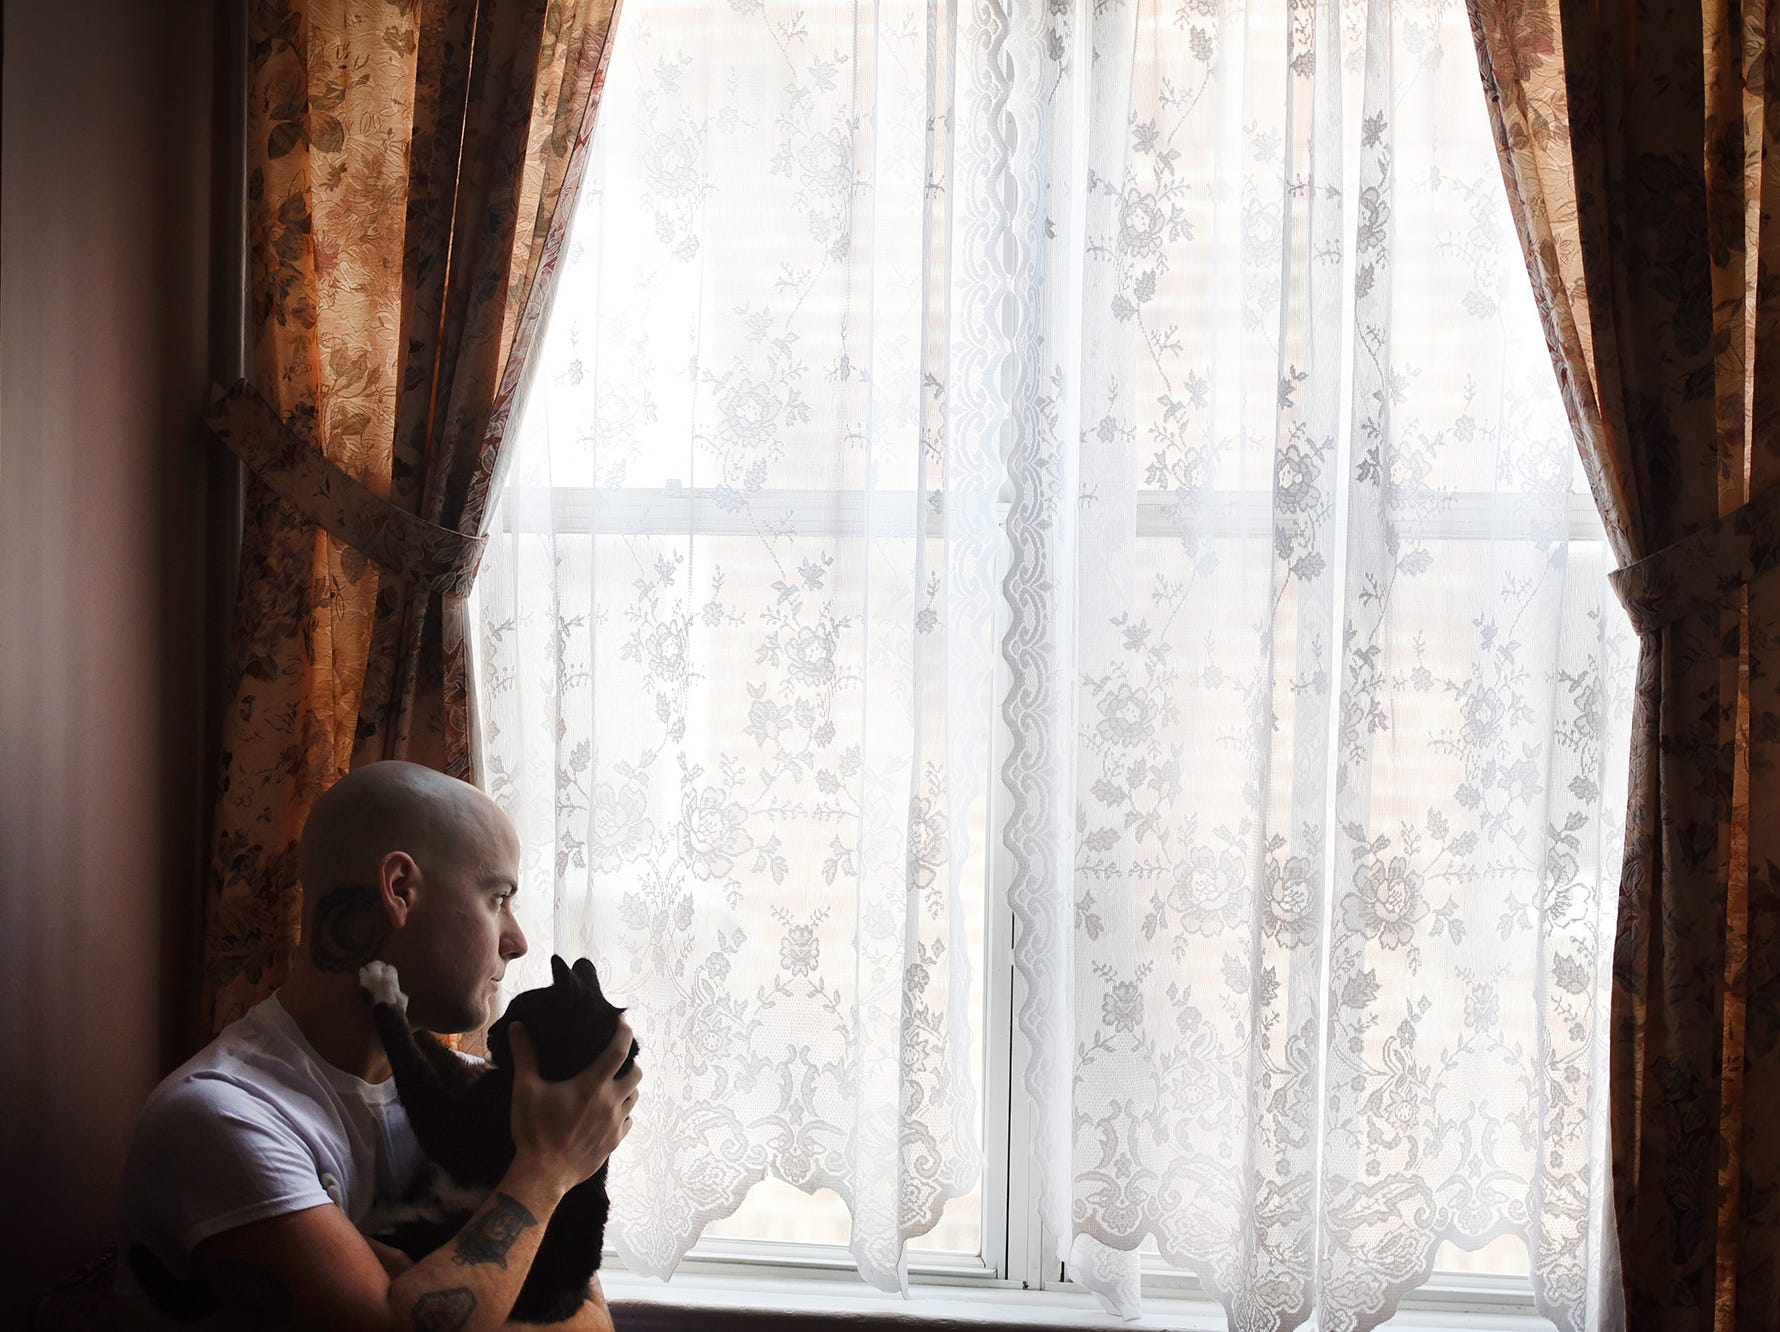 Matt Albanese, a Cliffside Park resident, who was picked up for heroin possession during April's Operation Helping Hand, holds his best friend Ve (16 year-old cat ) as he looks toward the outside from his home in Cliffside Park on 01/02/18. Albanese has stayed clean since his arrest in the sweep, which was done by the Bergen County Prosecutor's Office, and has his life back on track after seven years of addiction.